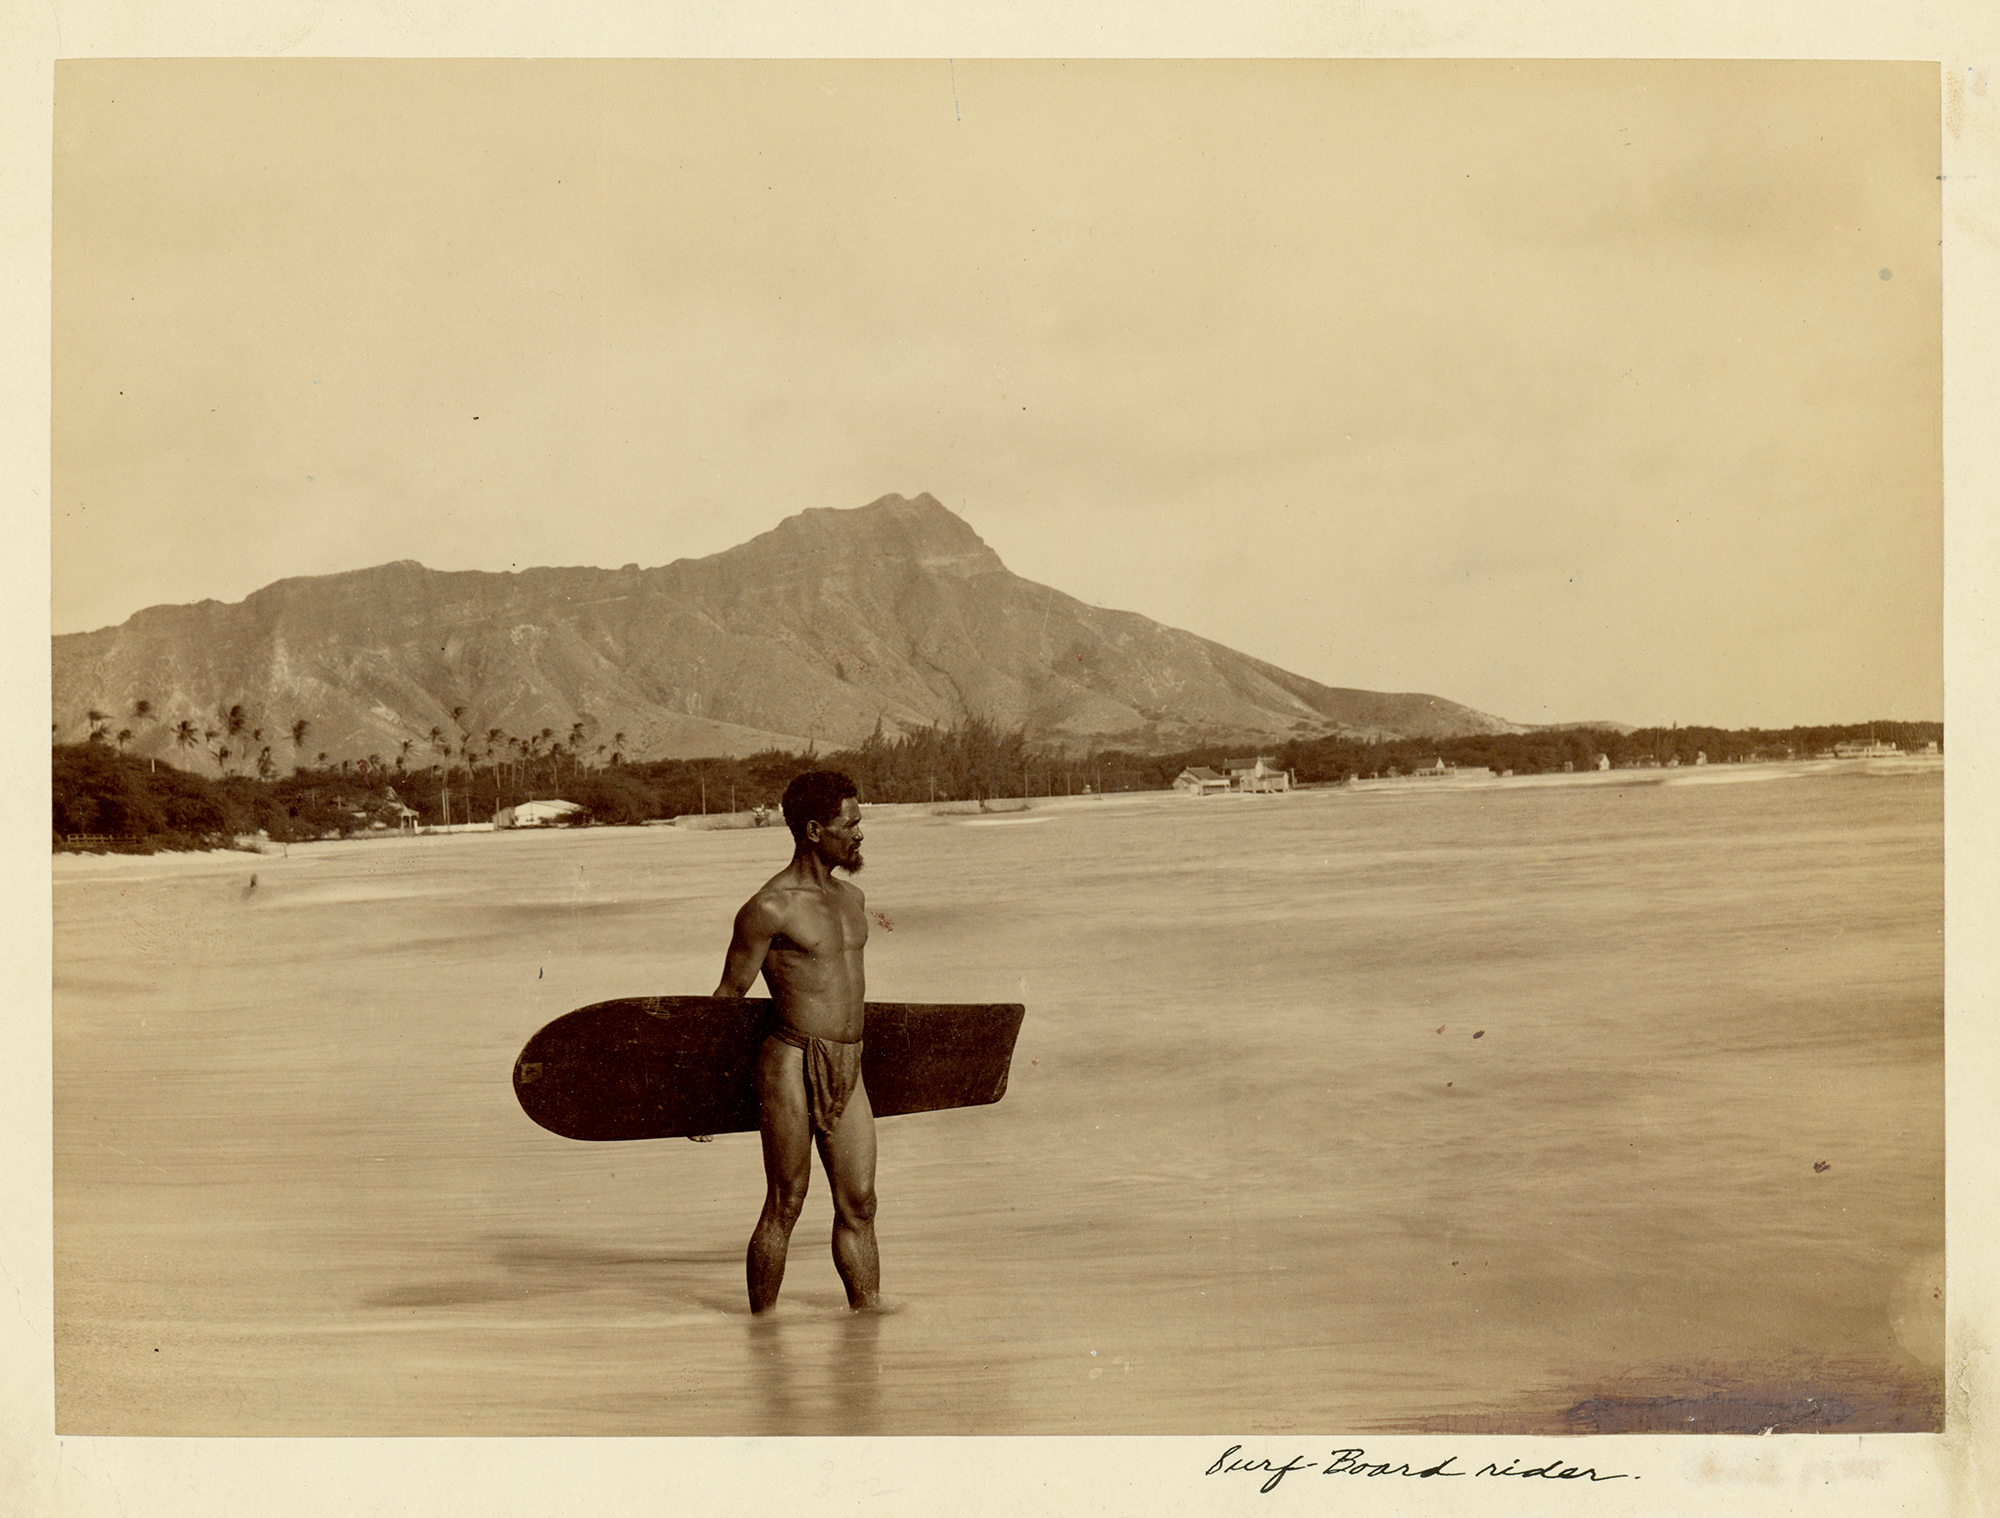 [Hawaiian man with surfboard] Diamond Head in background; Waikīkī, ca. 1890. Photographer unknown.